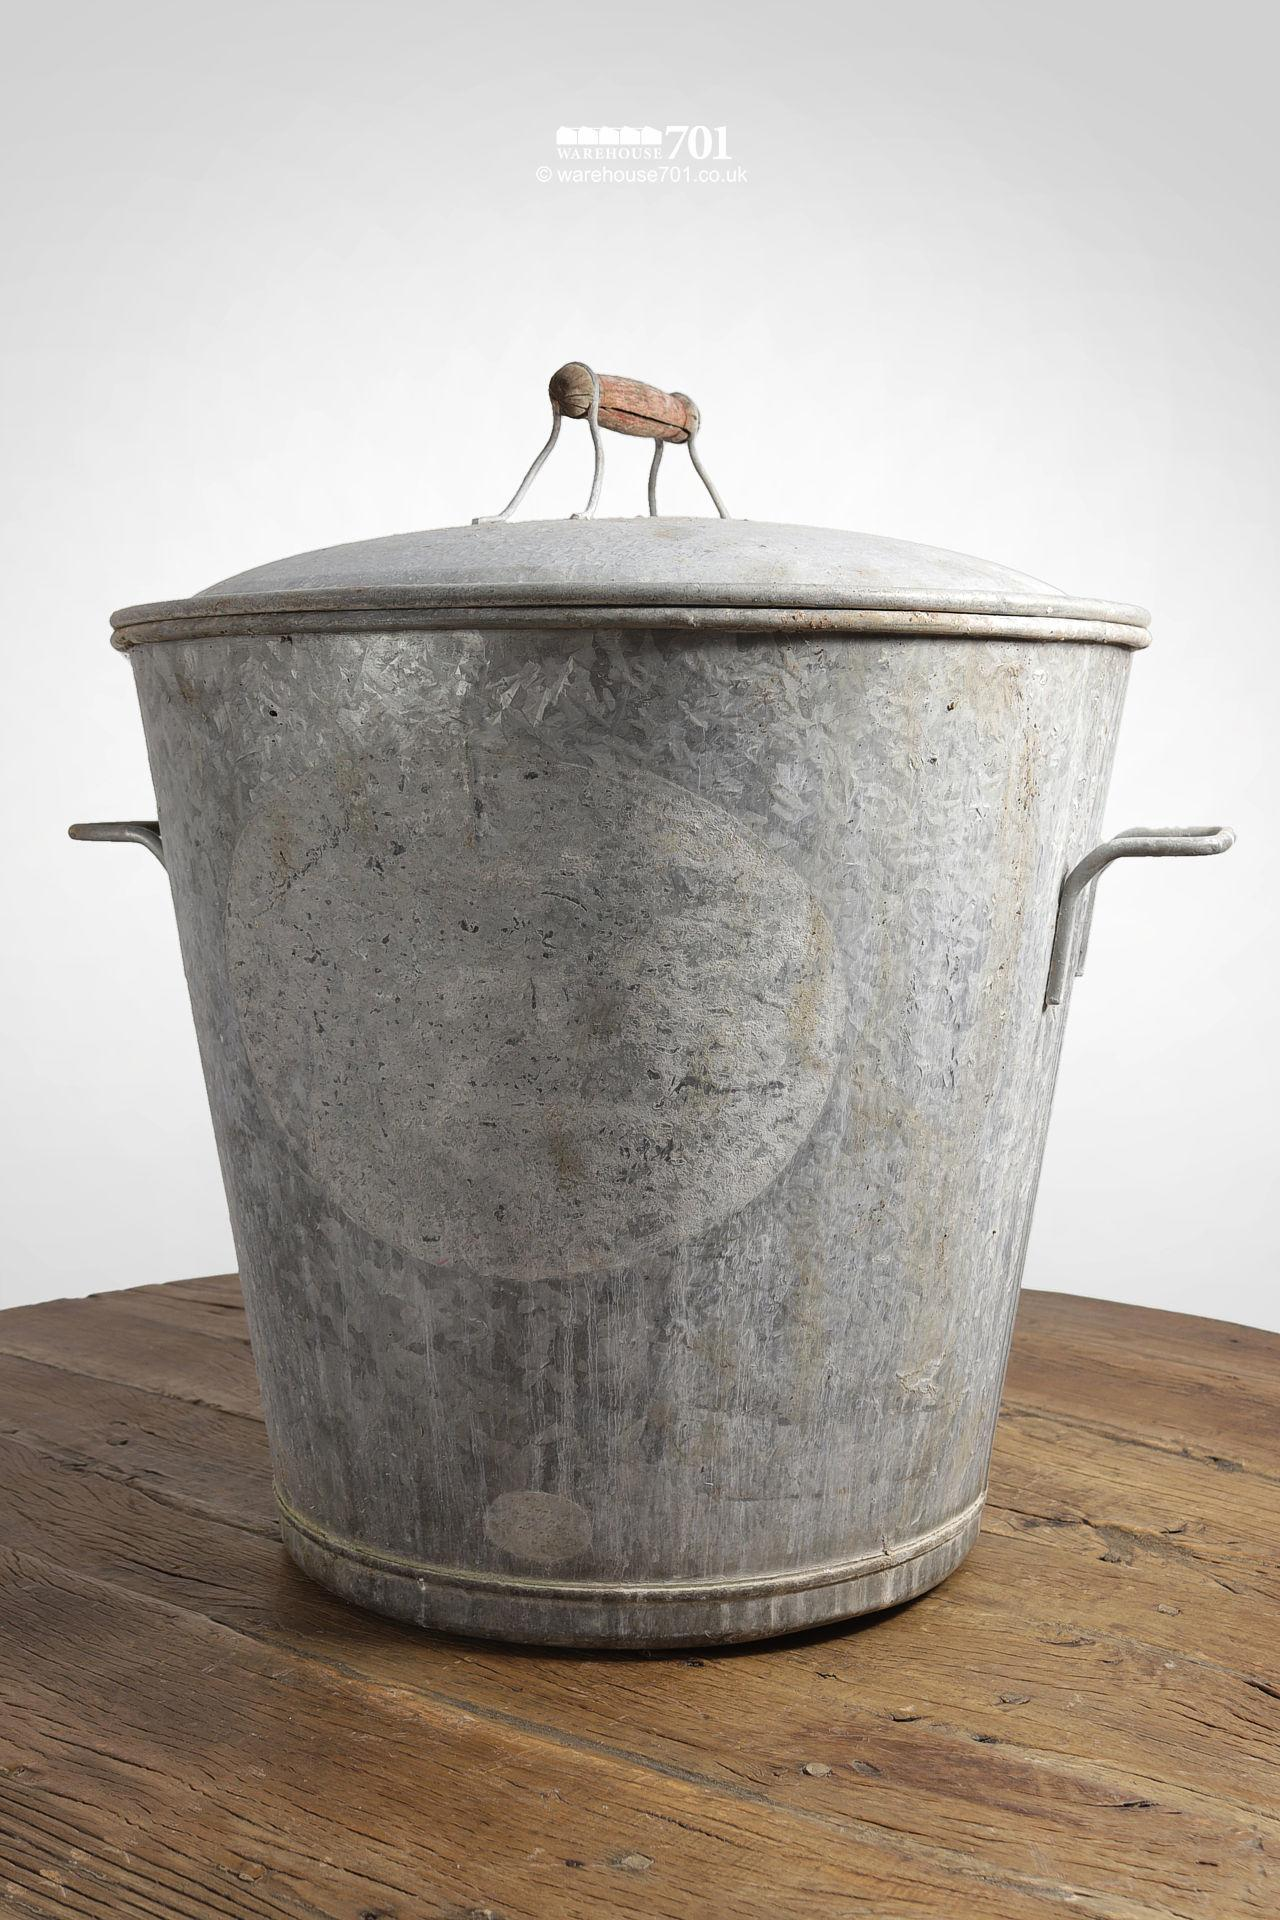 Handsome Vintage Galvanised Bucket with Lid